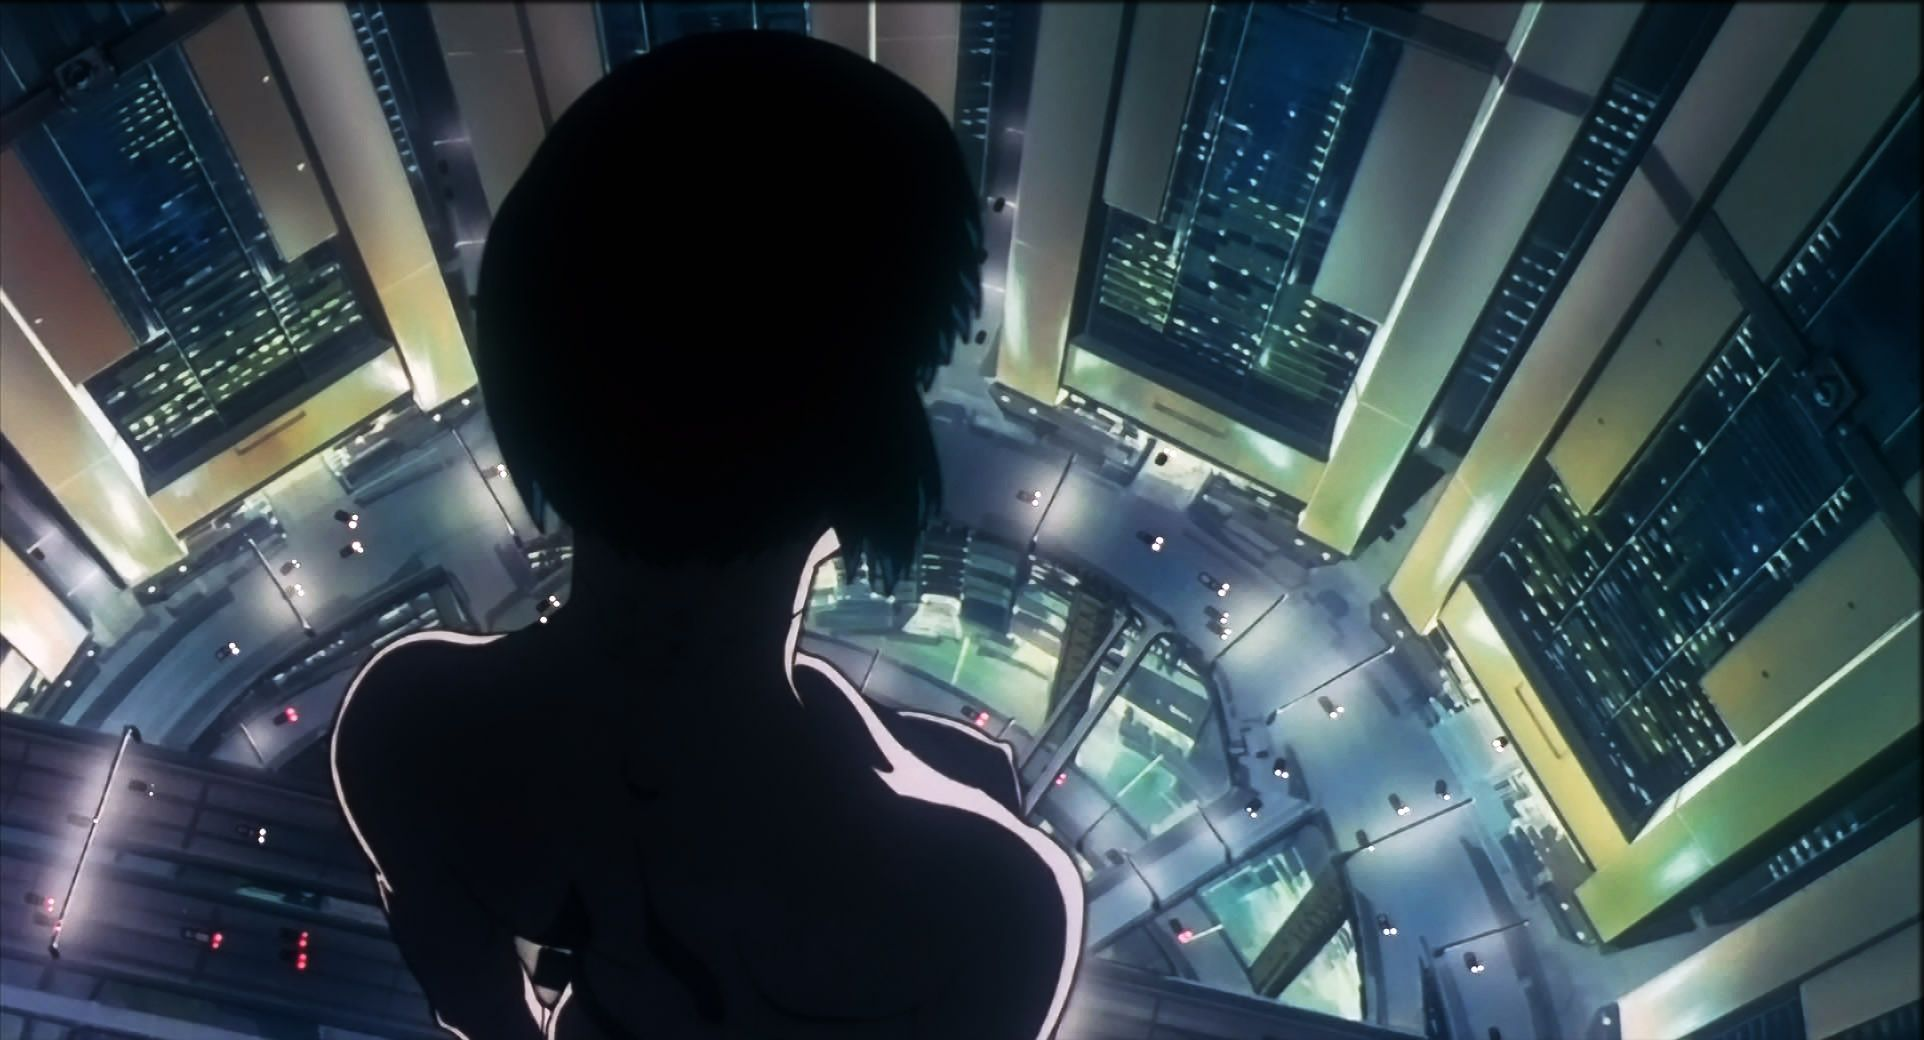 Motoko-Kusunagi-ghost-in-the-shell-anime